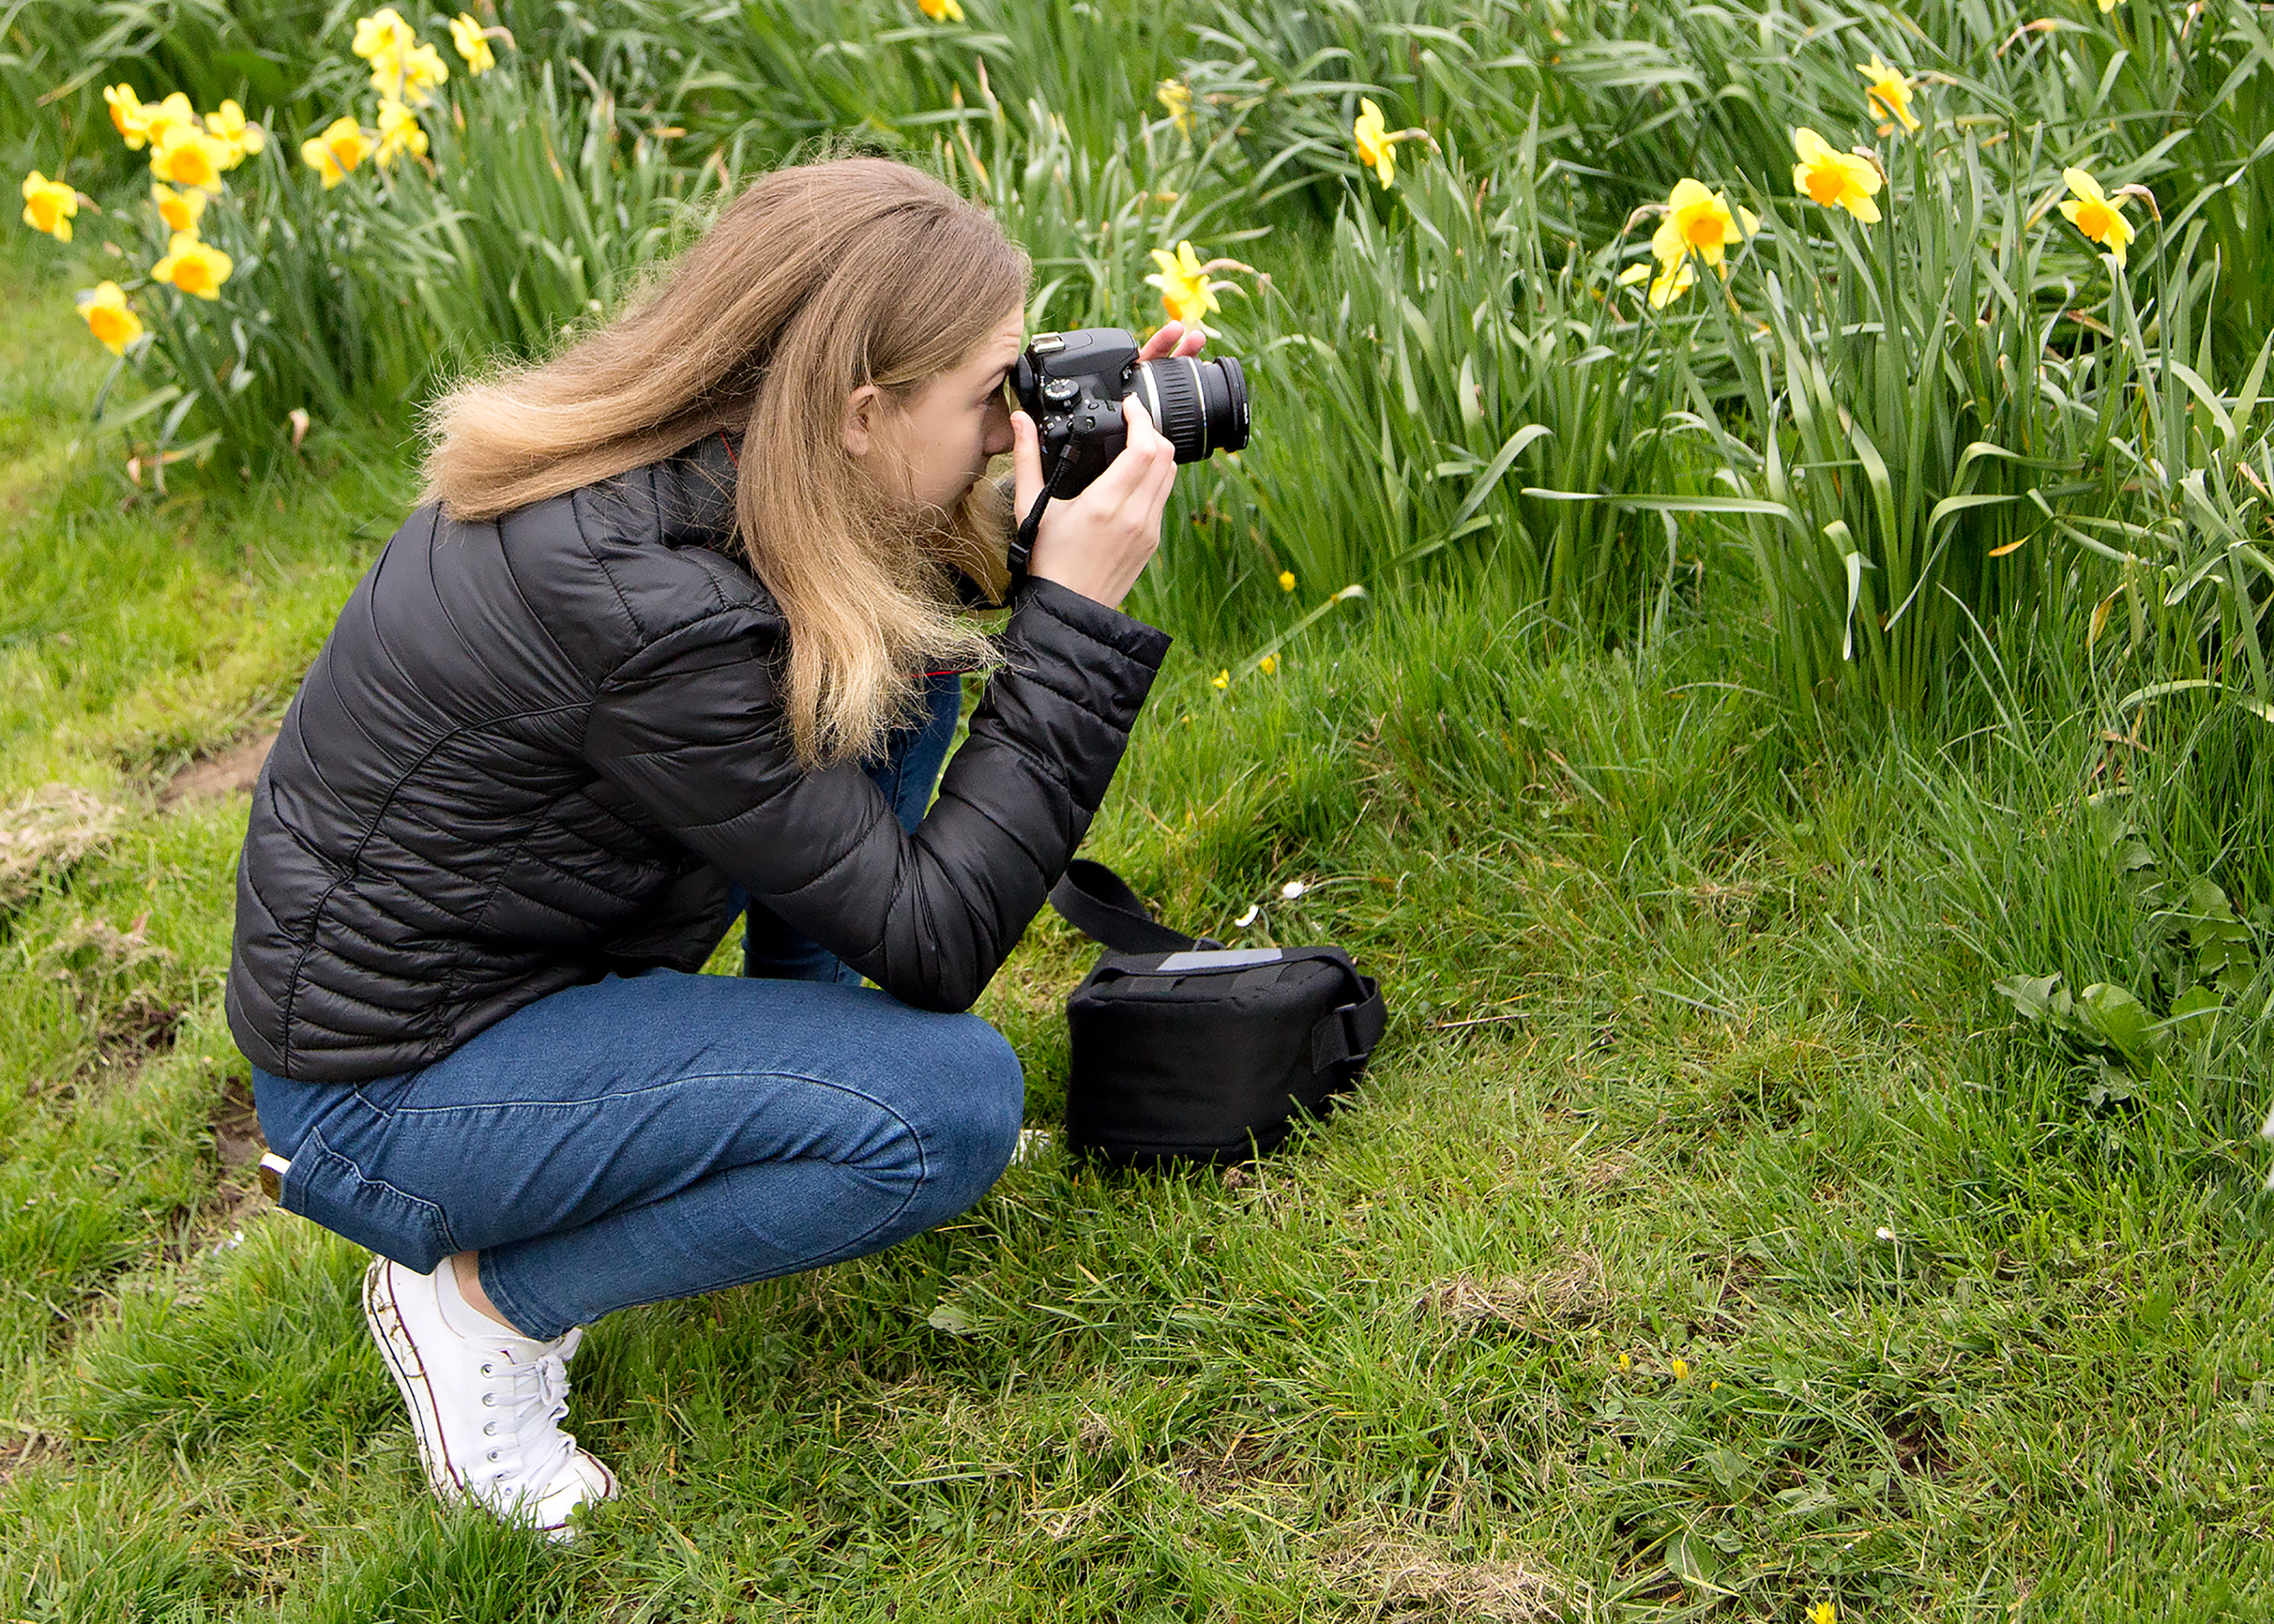 Girl taking a photo in a park